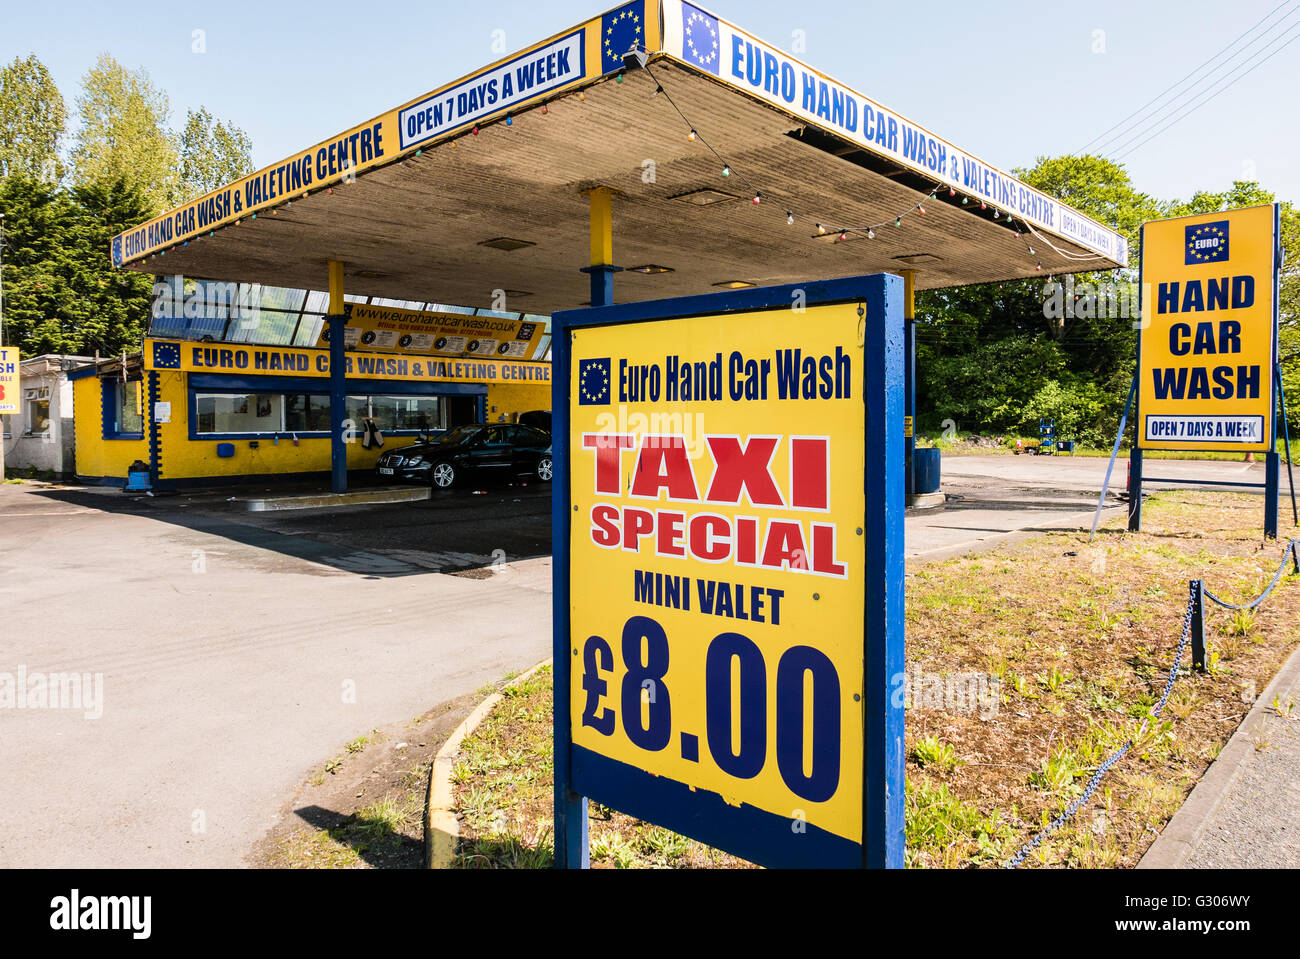 Car wash signs stock photos car wash signs stock images alamy signs at a euro hand car wash including one for a taxi special solutioingenieria Images